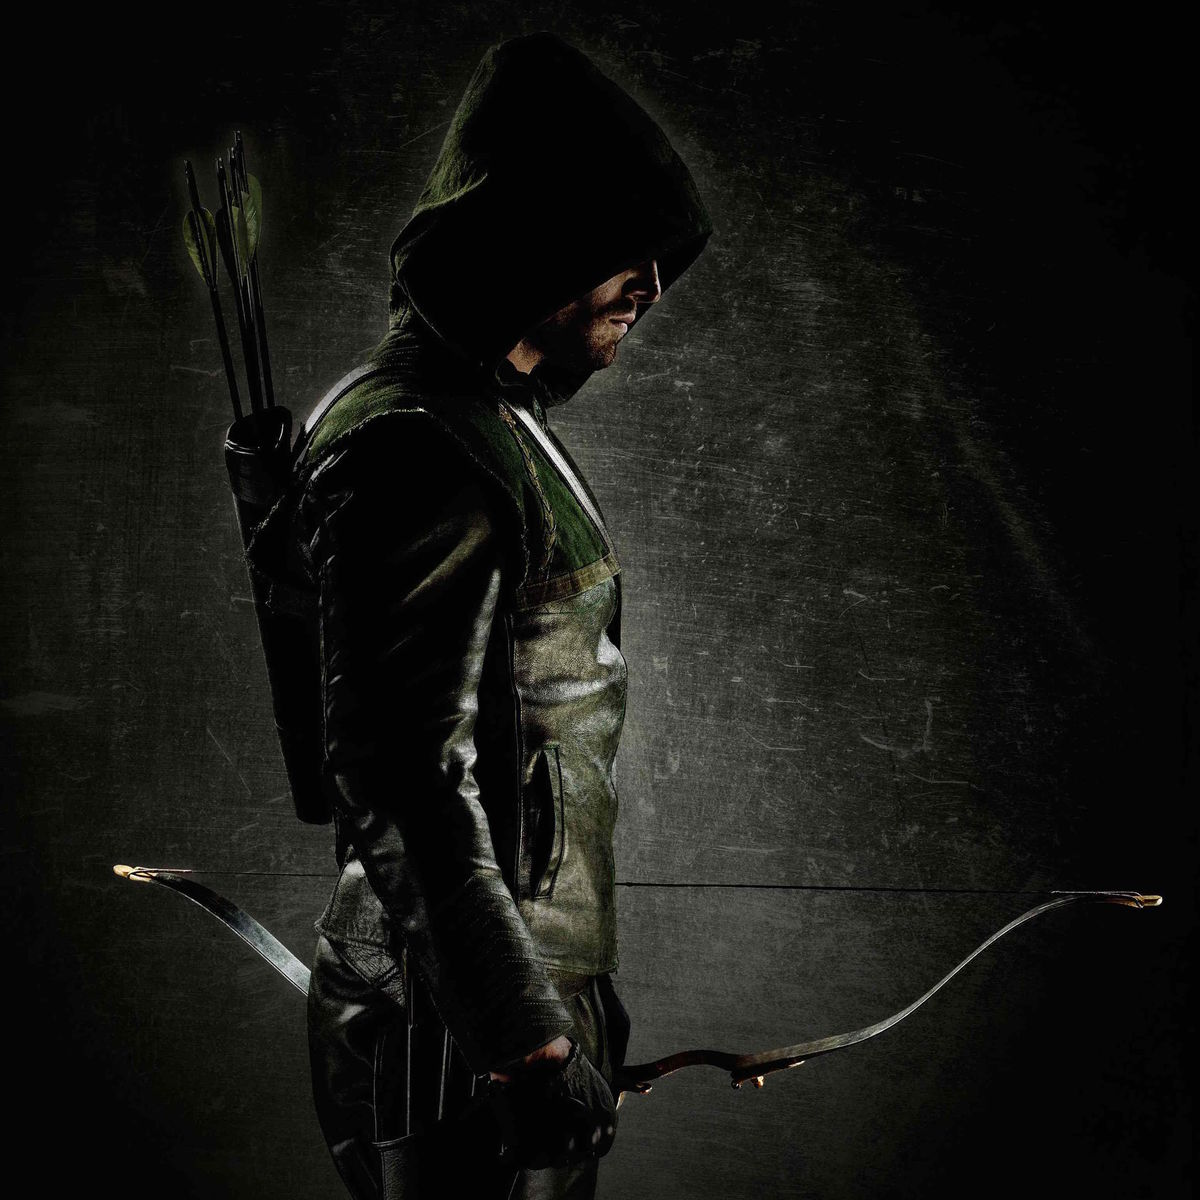 ARROW_Green-Arrow.jpg